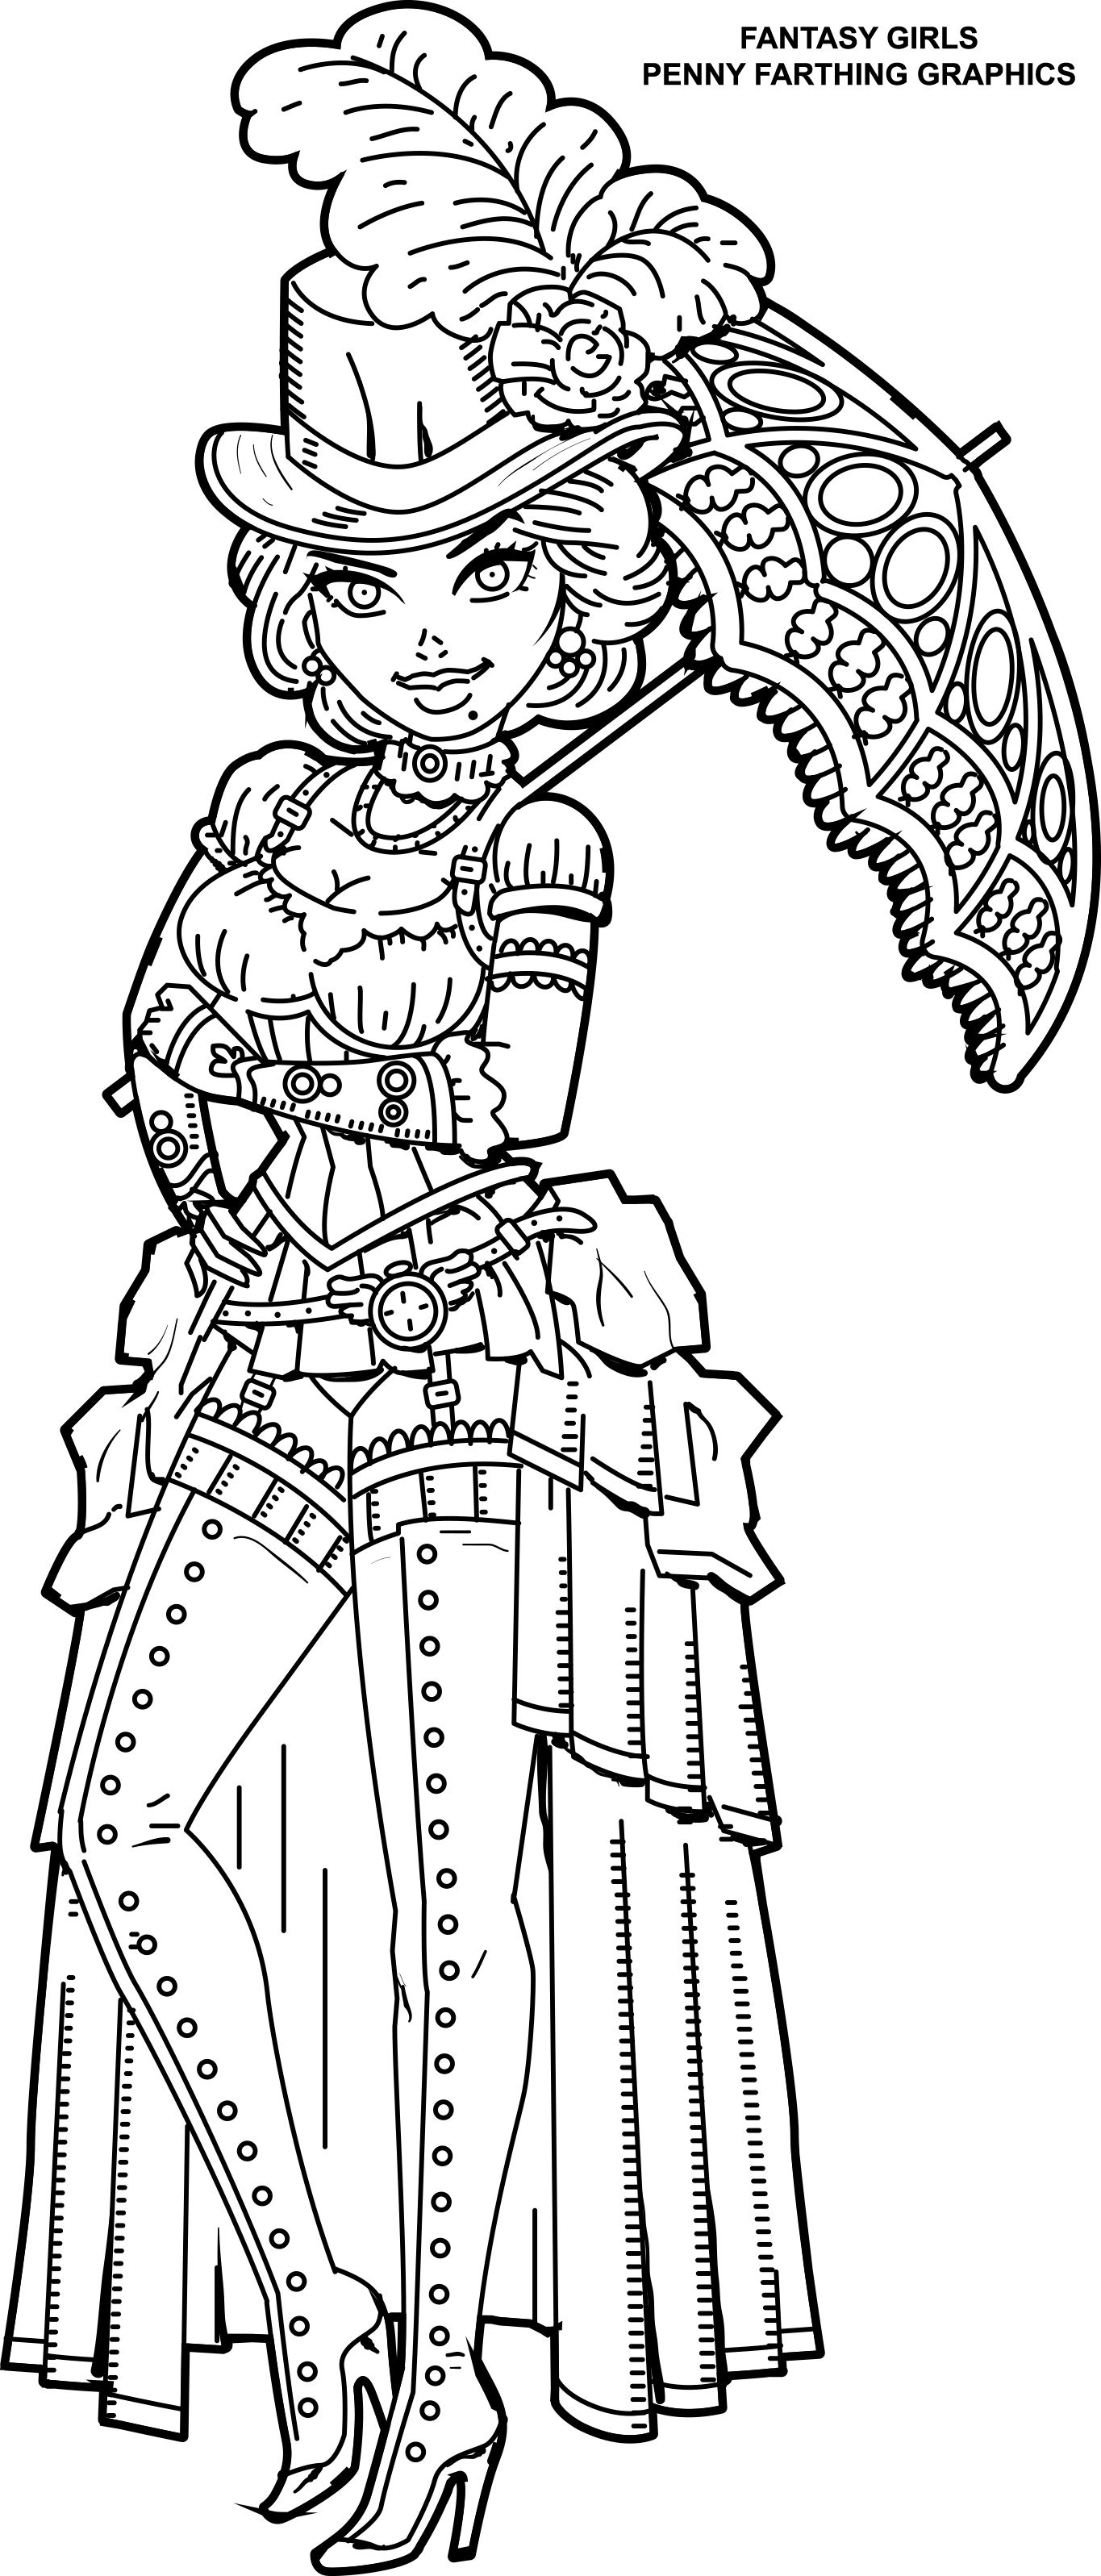 Steampunk Coloring Page From Fantasy Girls: Femme Fatales